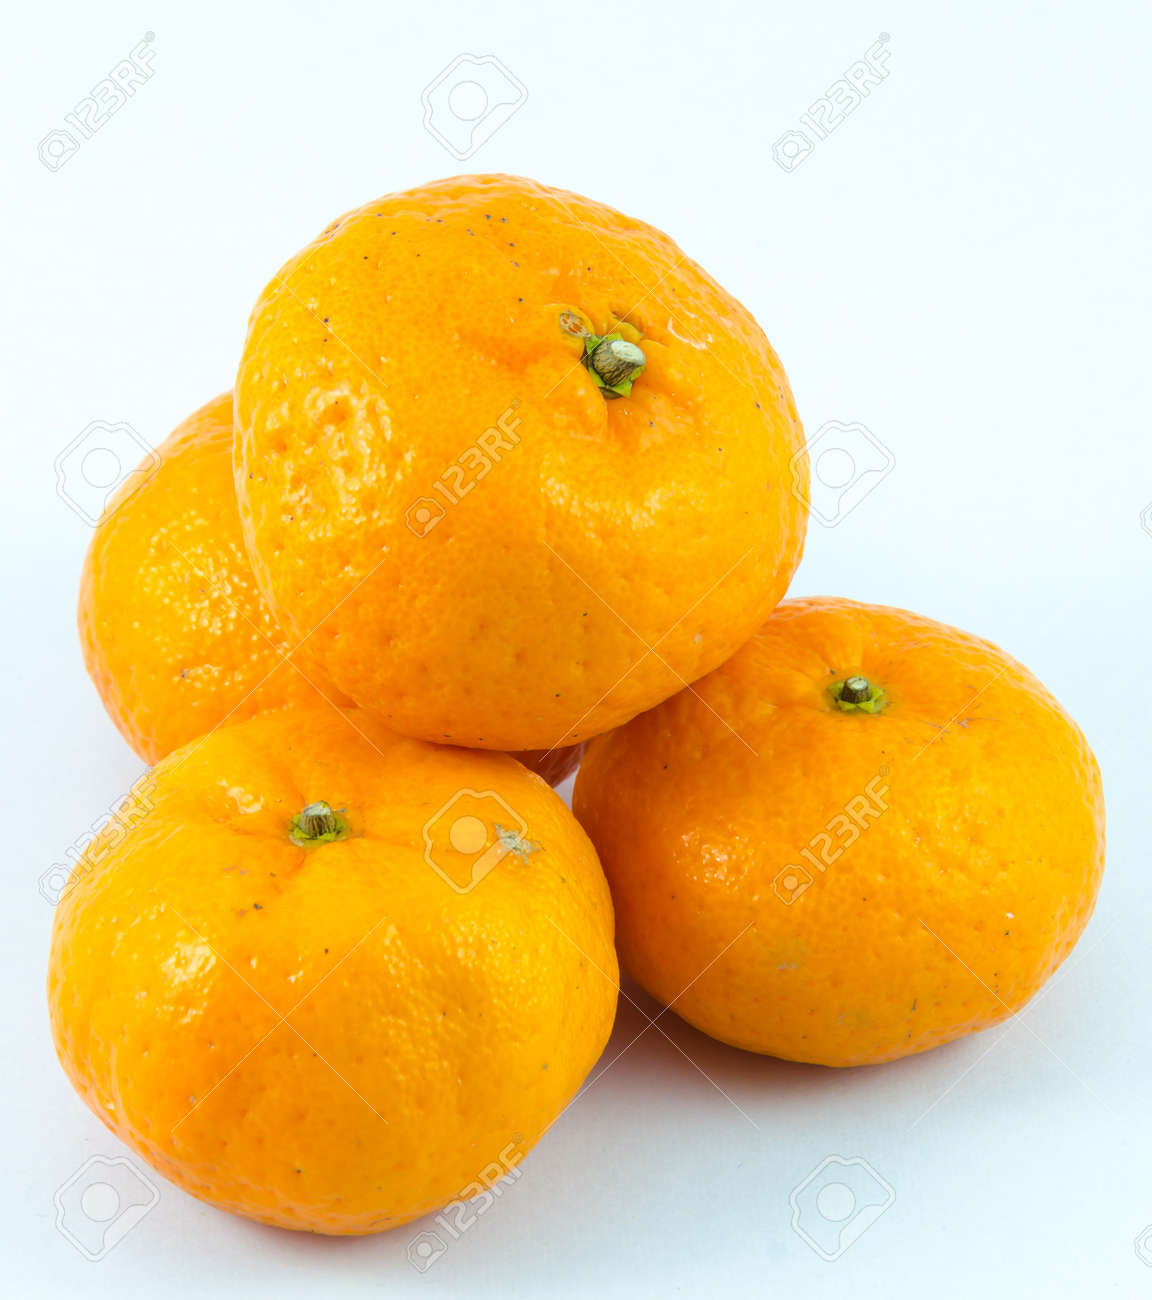 Orange with white backgrounds. Stock Photo - 17292607